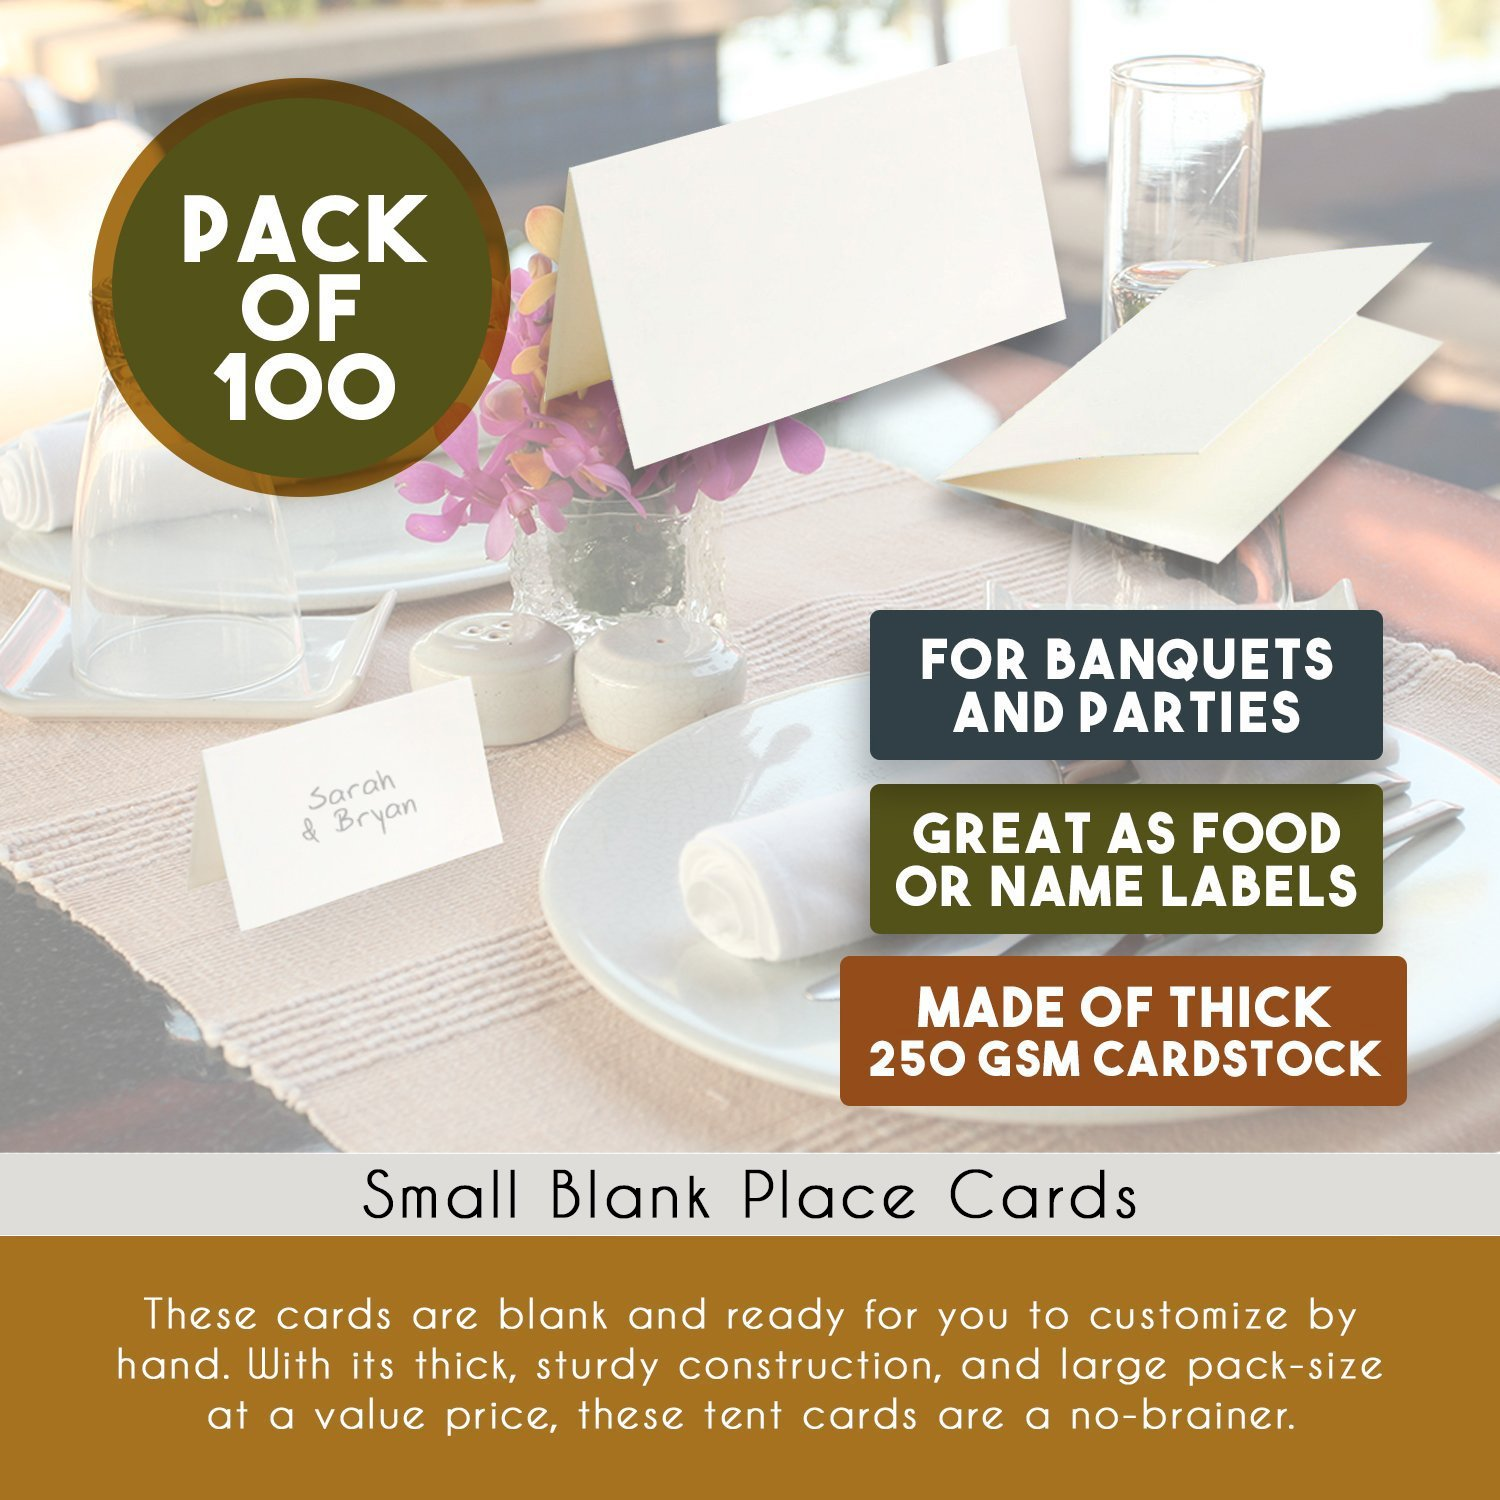 Amazoncom Best Paper Greetings Pack Of Place Cards Small - Large table tent cards